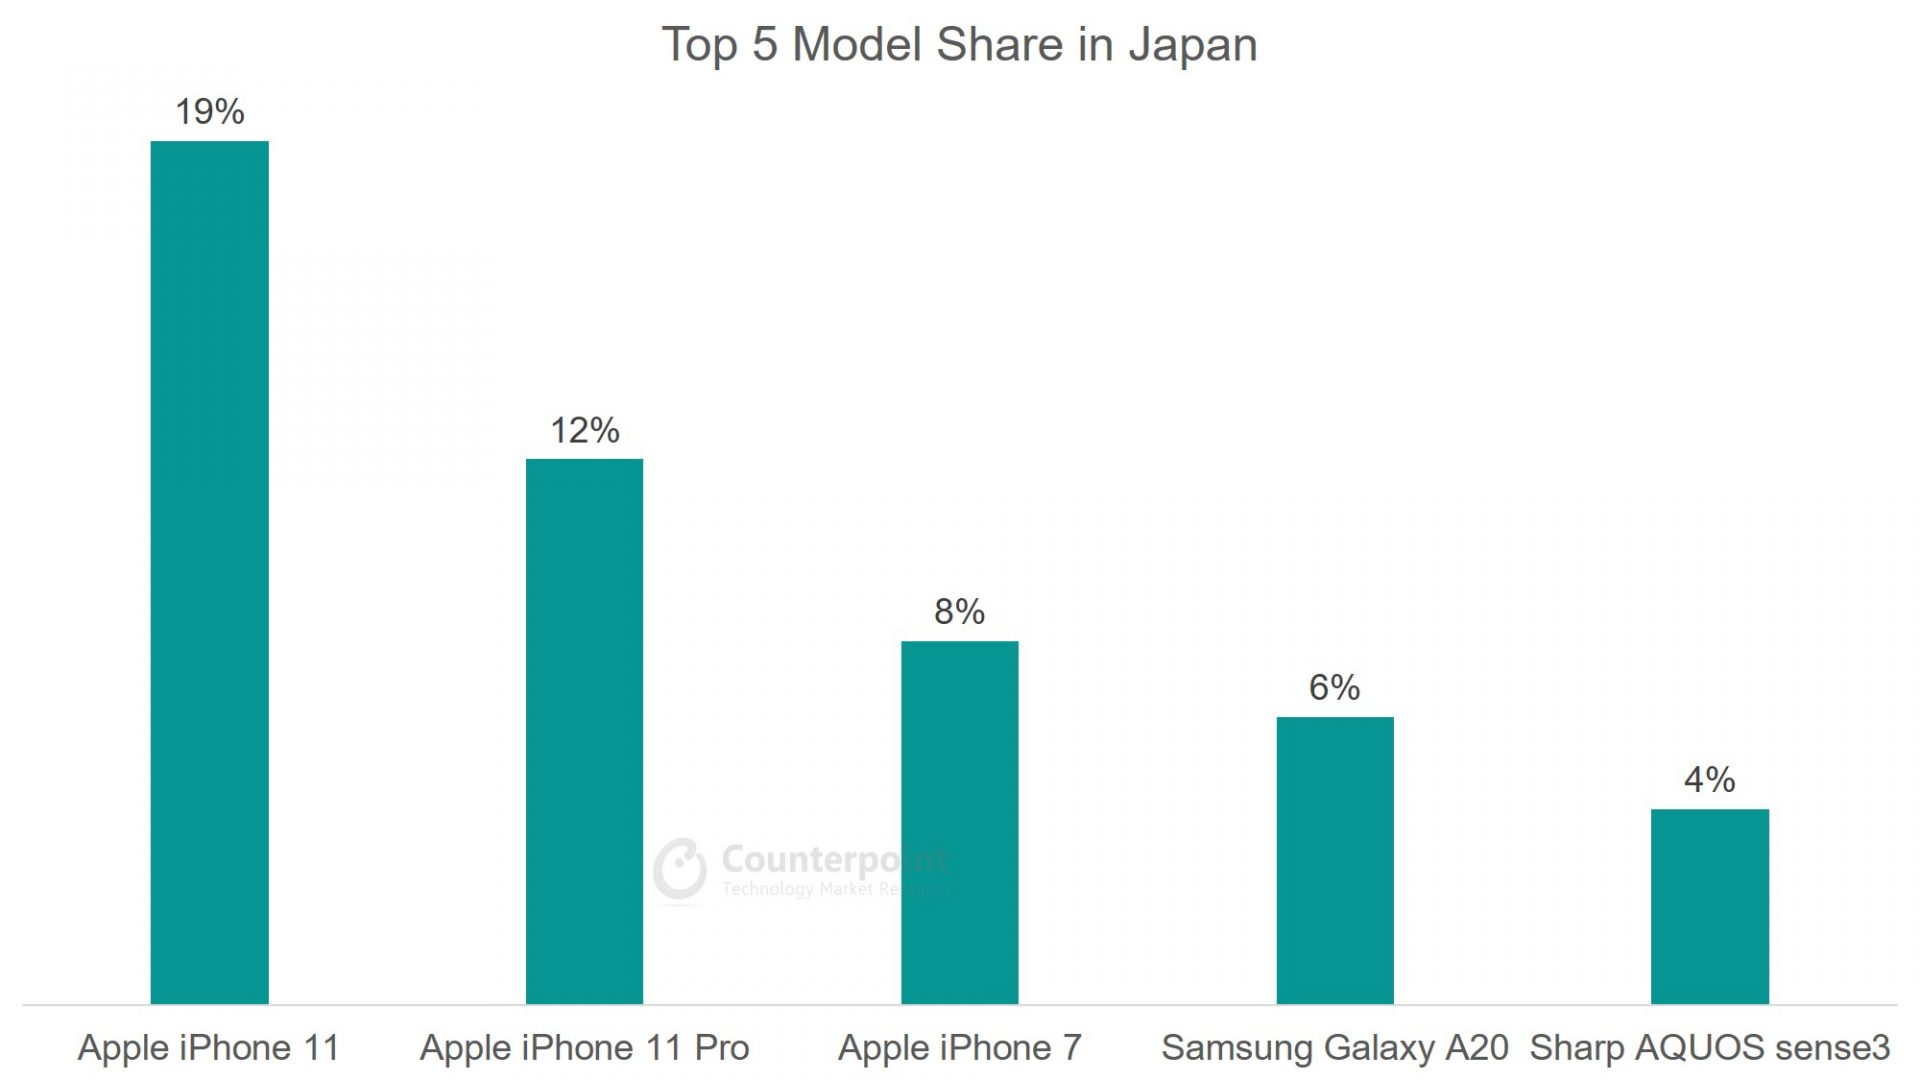 Counterpoint: (Apr 2020) Top 5 Smartphone Model Share in Japan